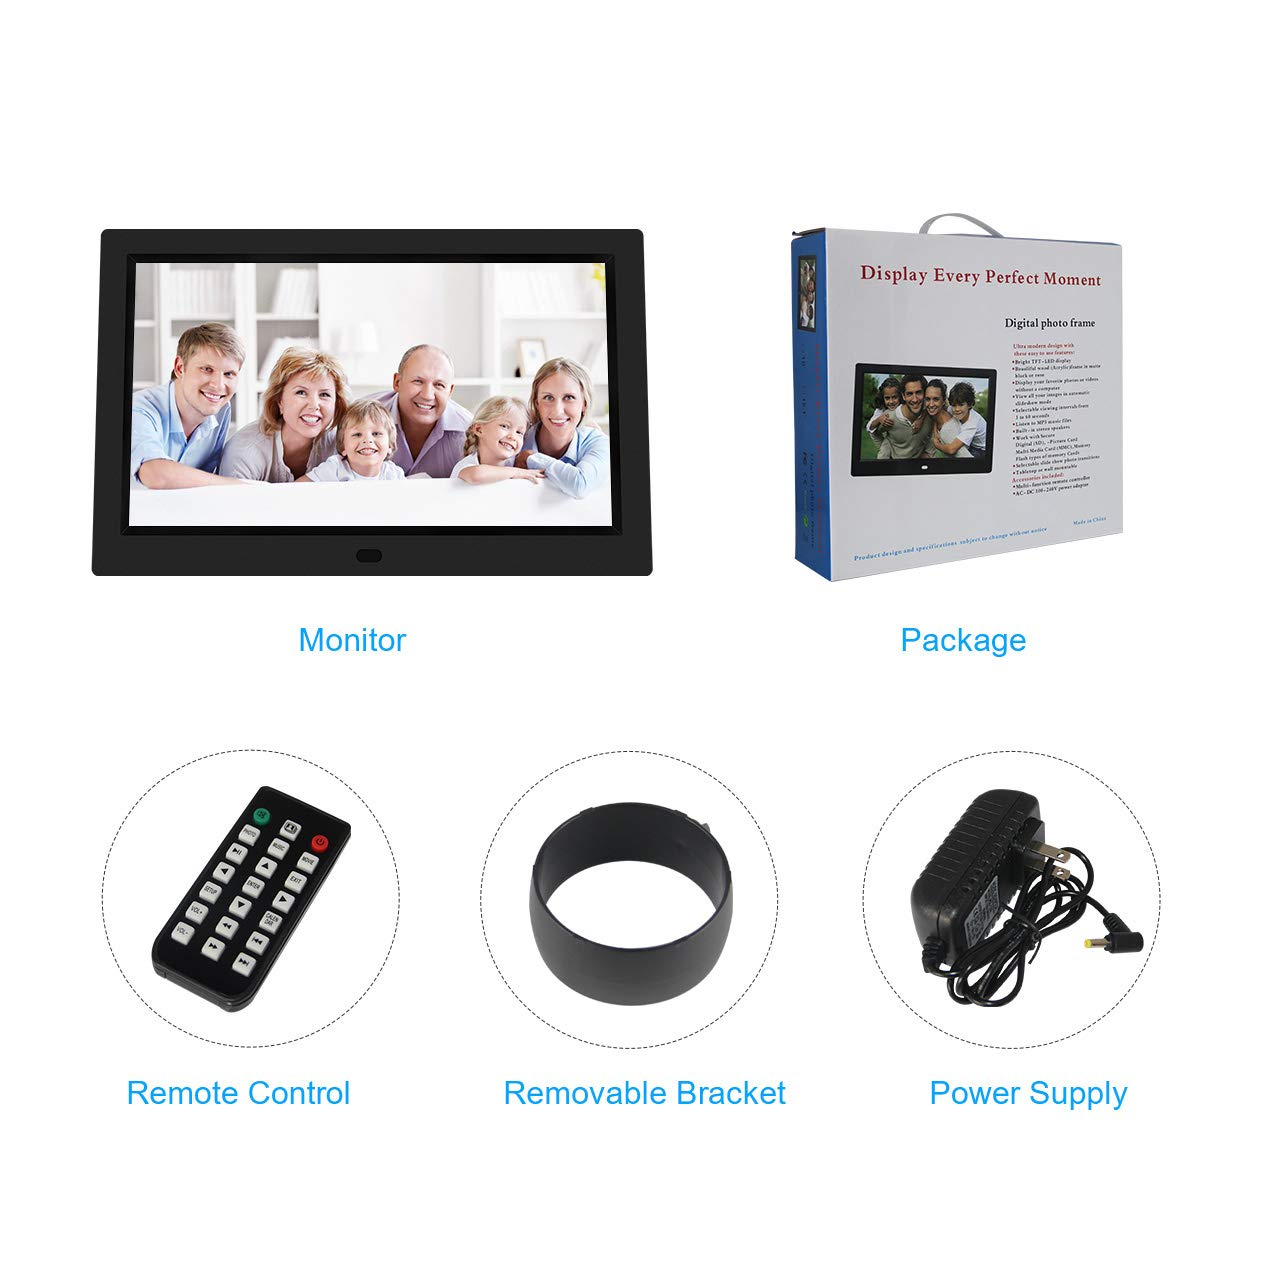 Wrg 2262 Linx Dgital Photo Frame Instruction Manual 2019 Ebook